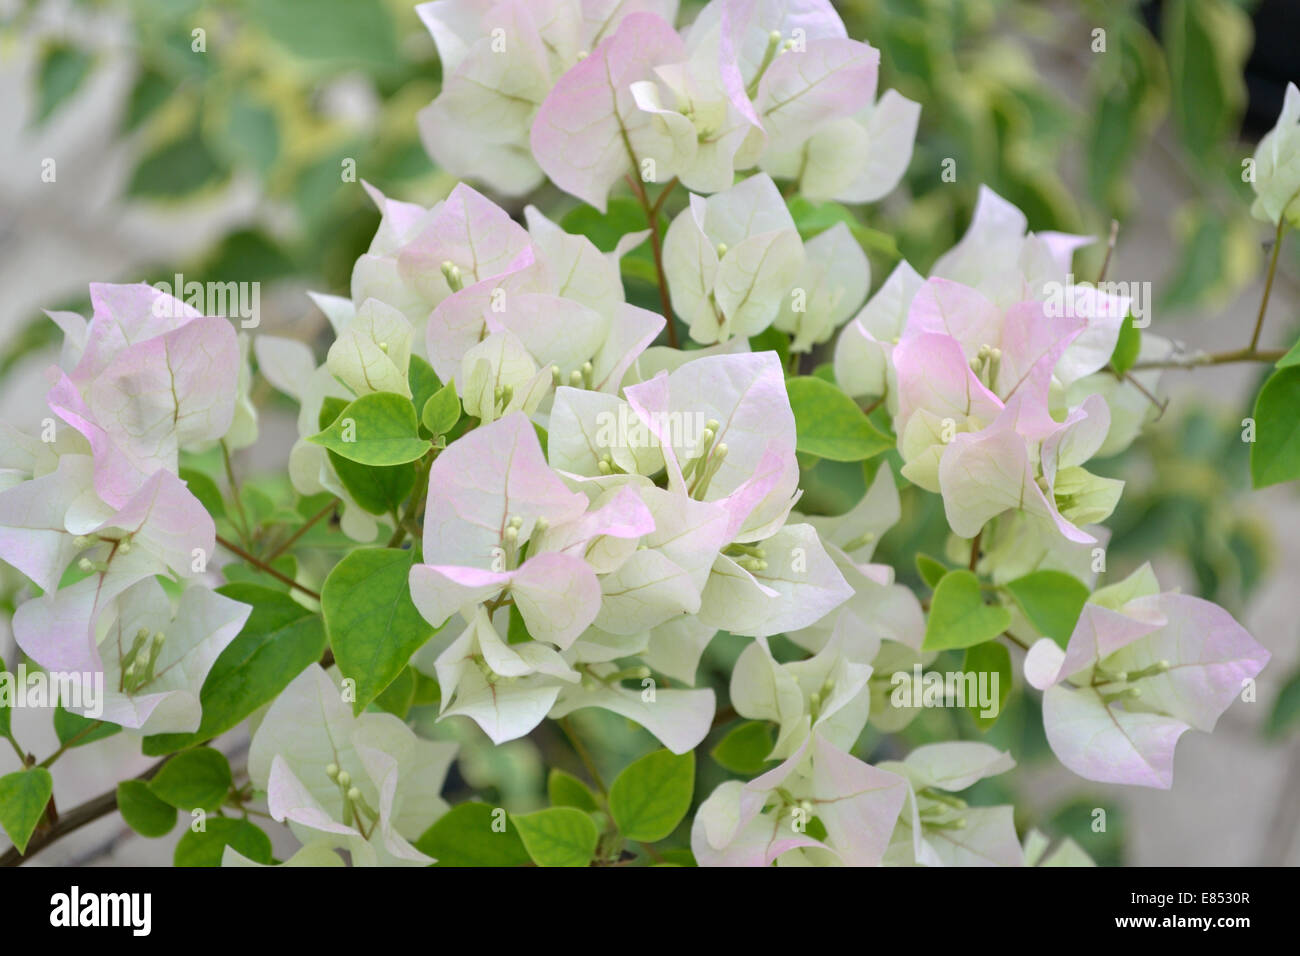 Bougainvillea with Pink Flowers - Stock Image